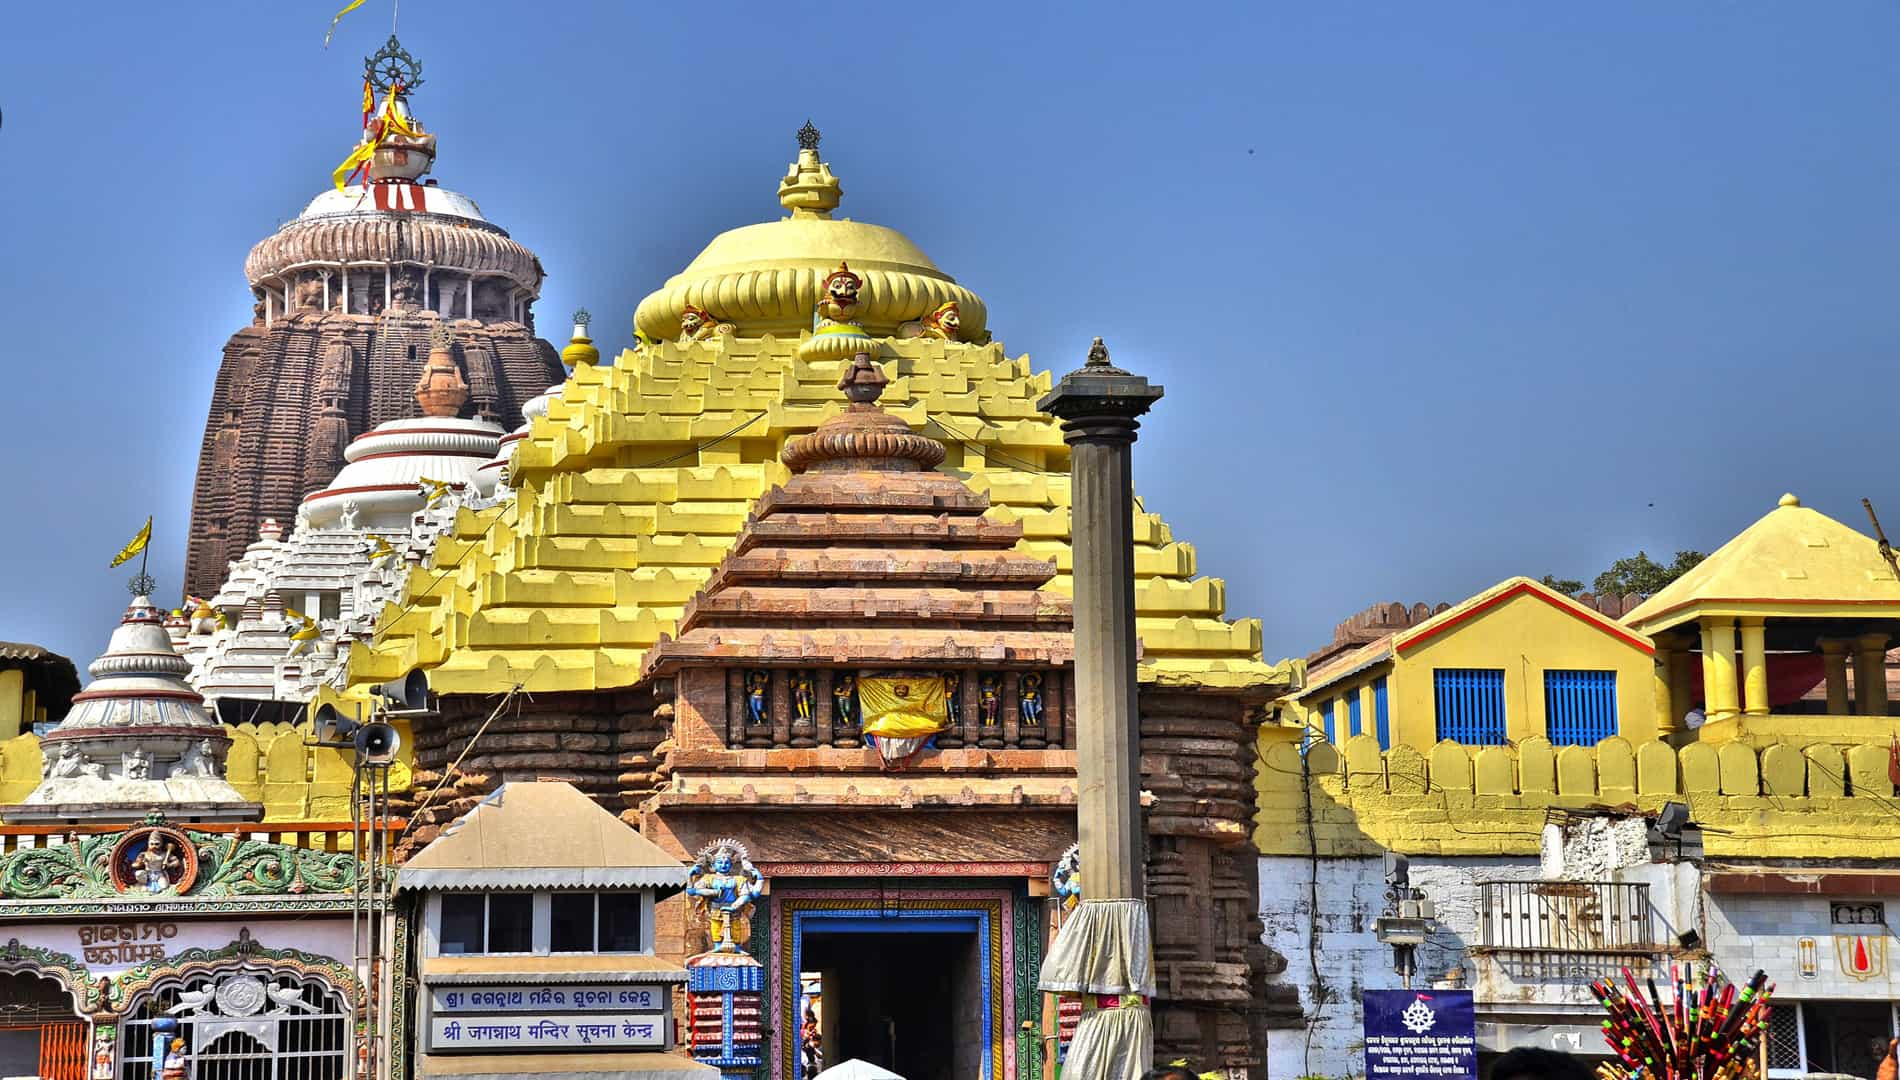 Jagannath Temple - Puri Is The Wealthiest And Richest Temples In India